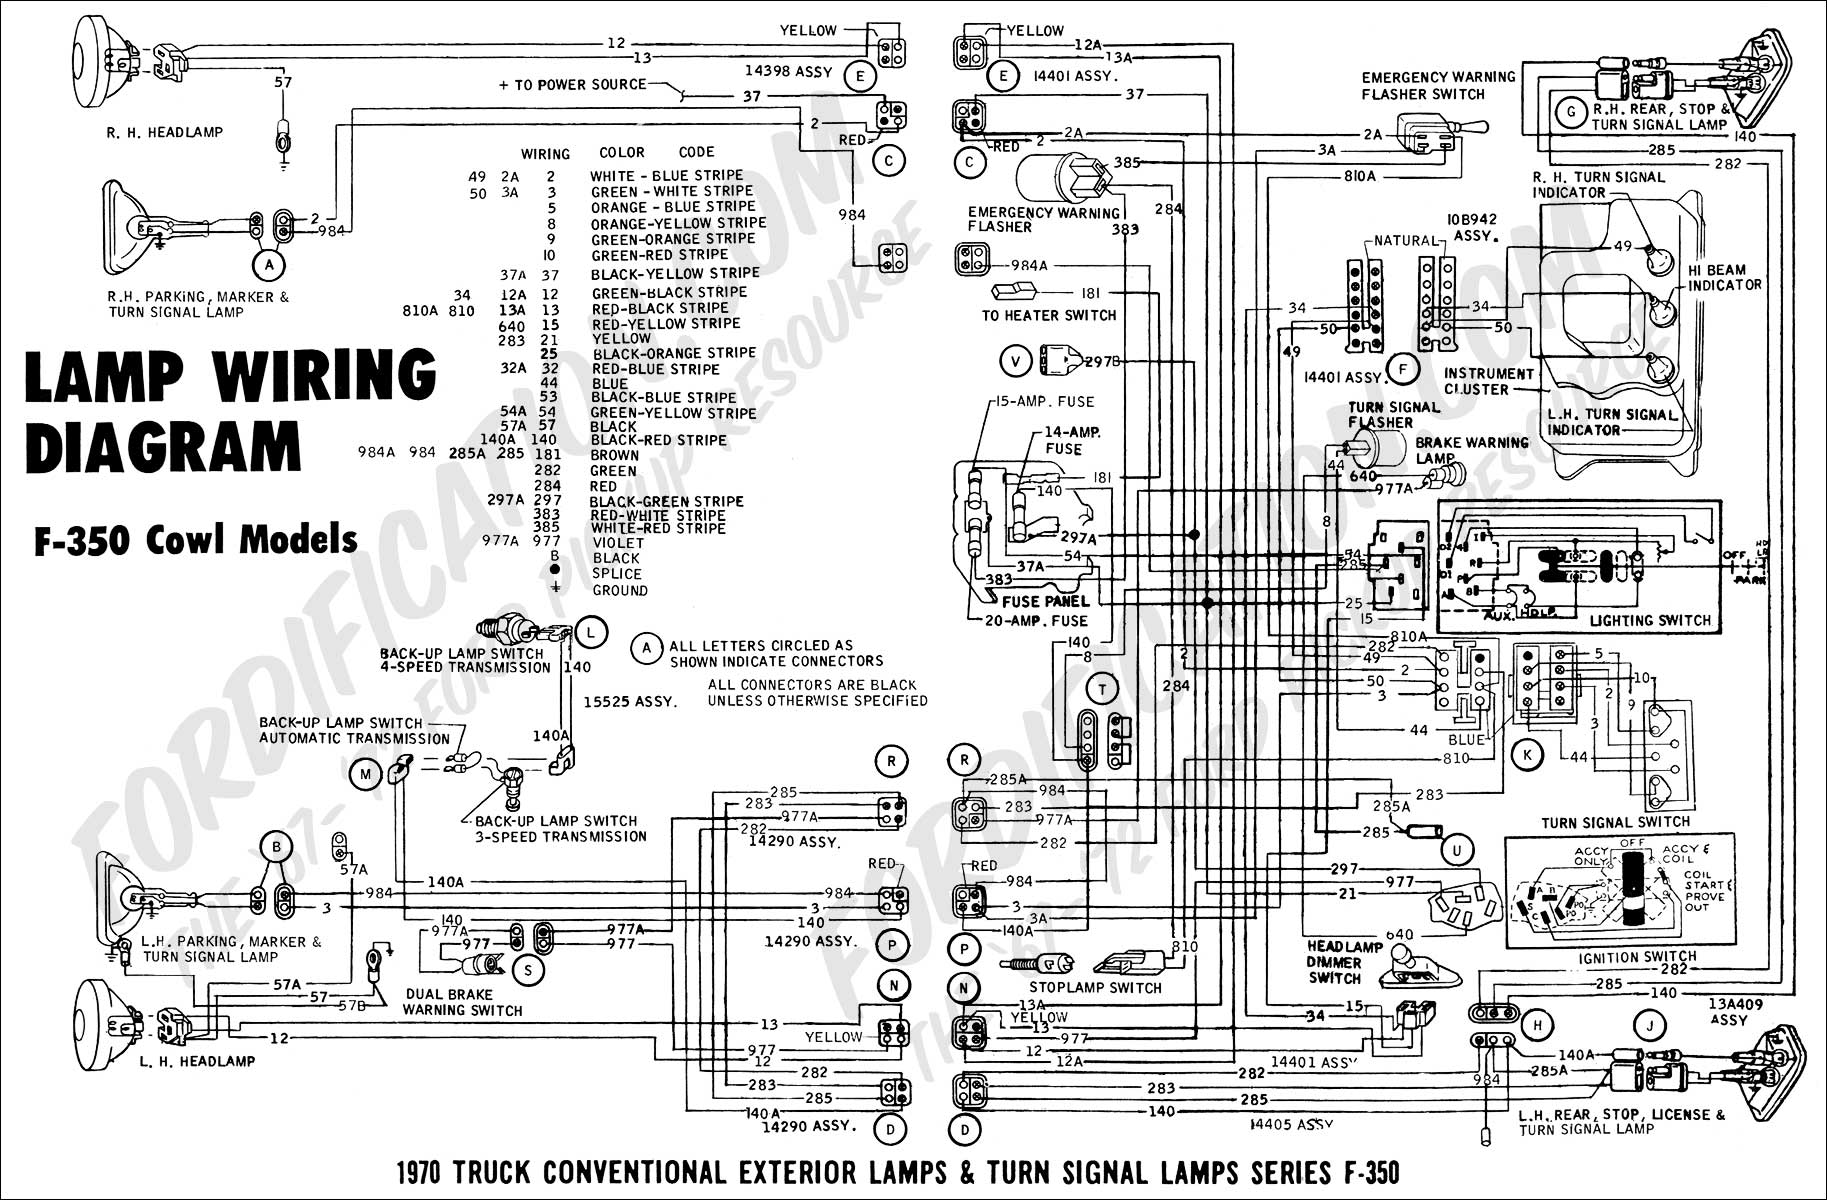 Automotive Ethernet Engineering Wellness Toyota Prius Headlight Wiring Diagram A 70f350cowl Lights01